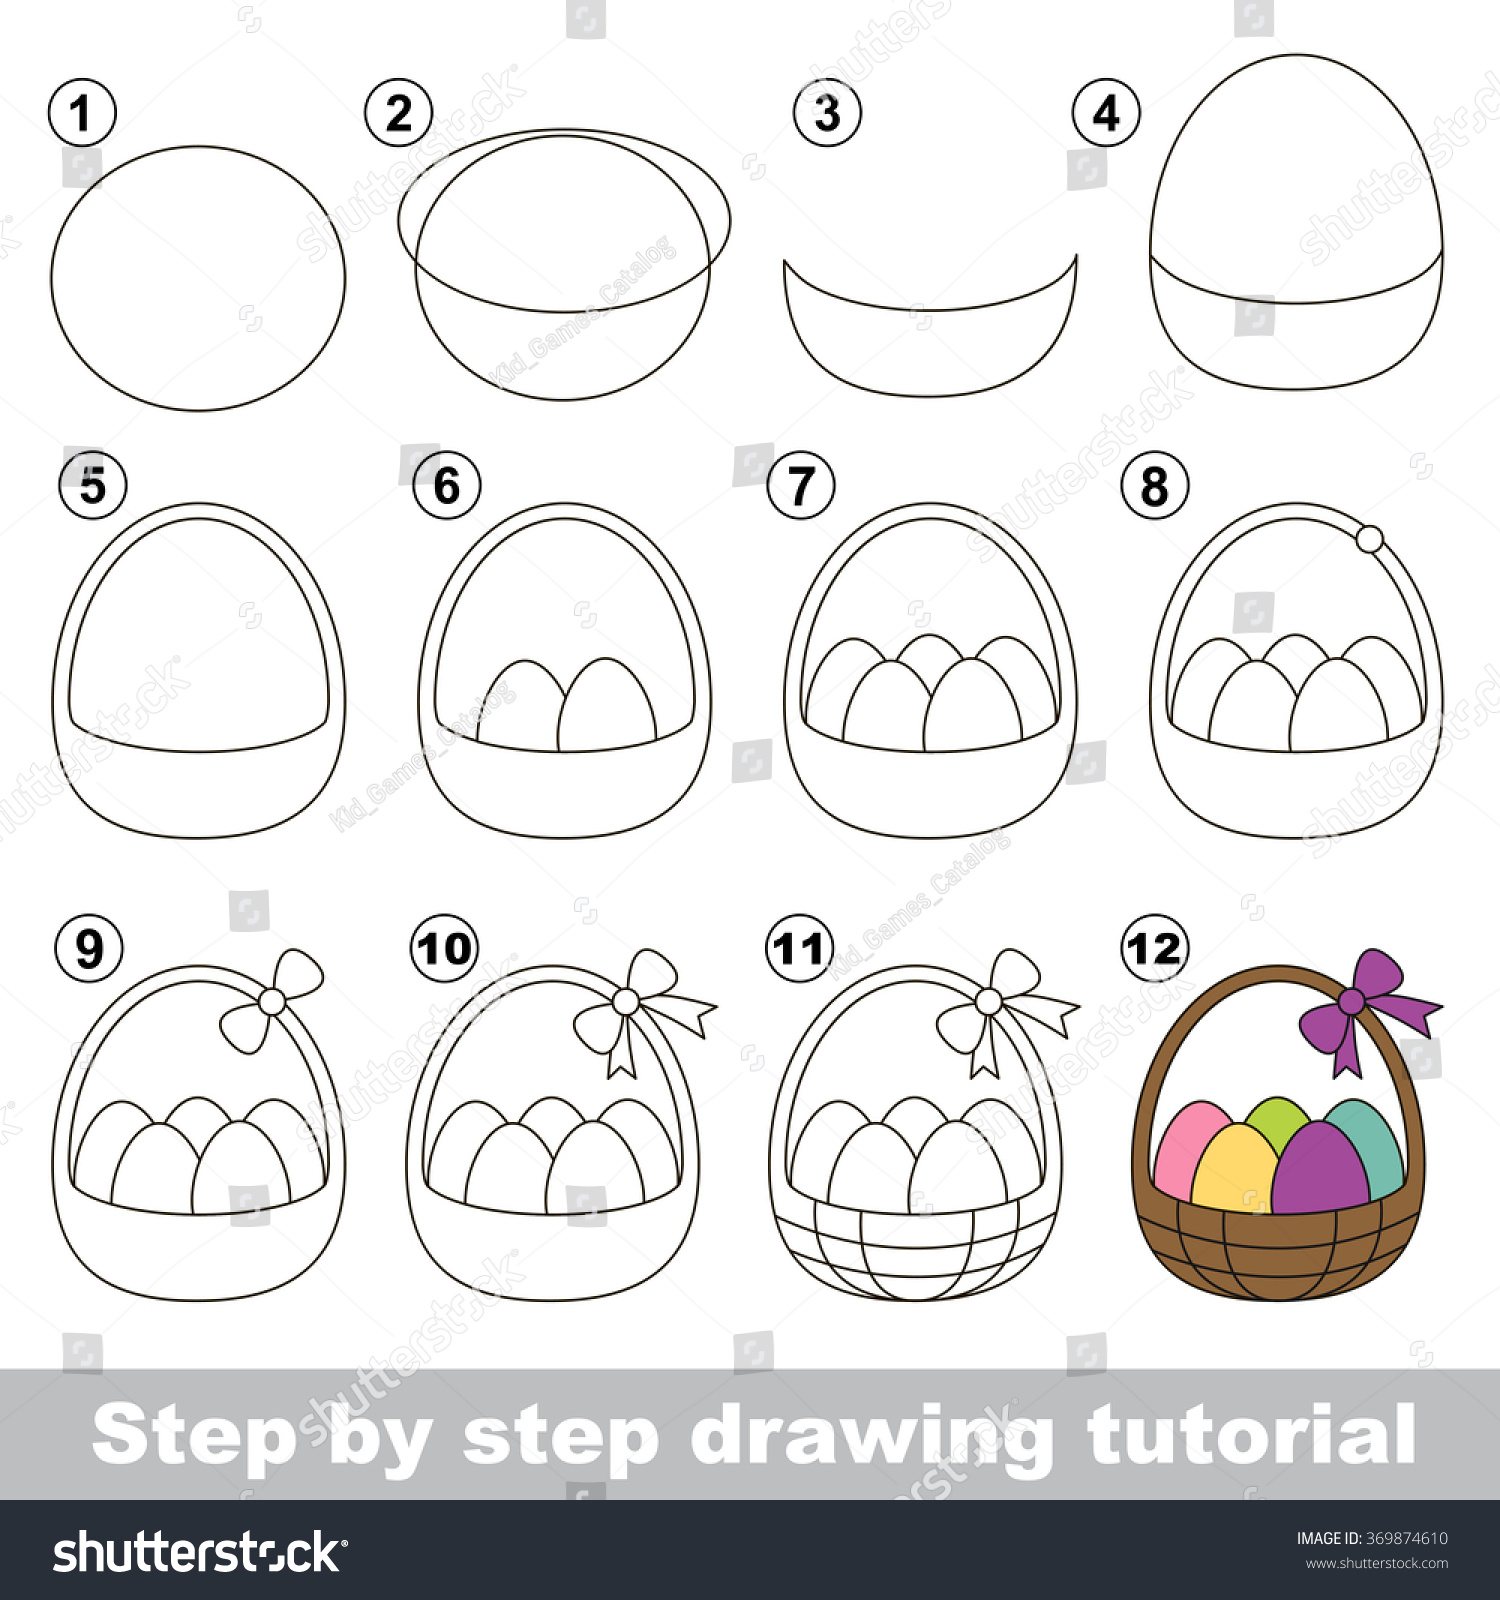 How To Draw A Easter Basket